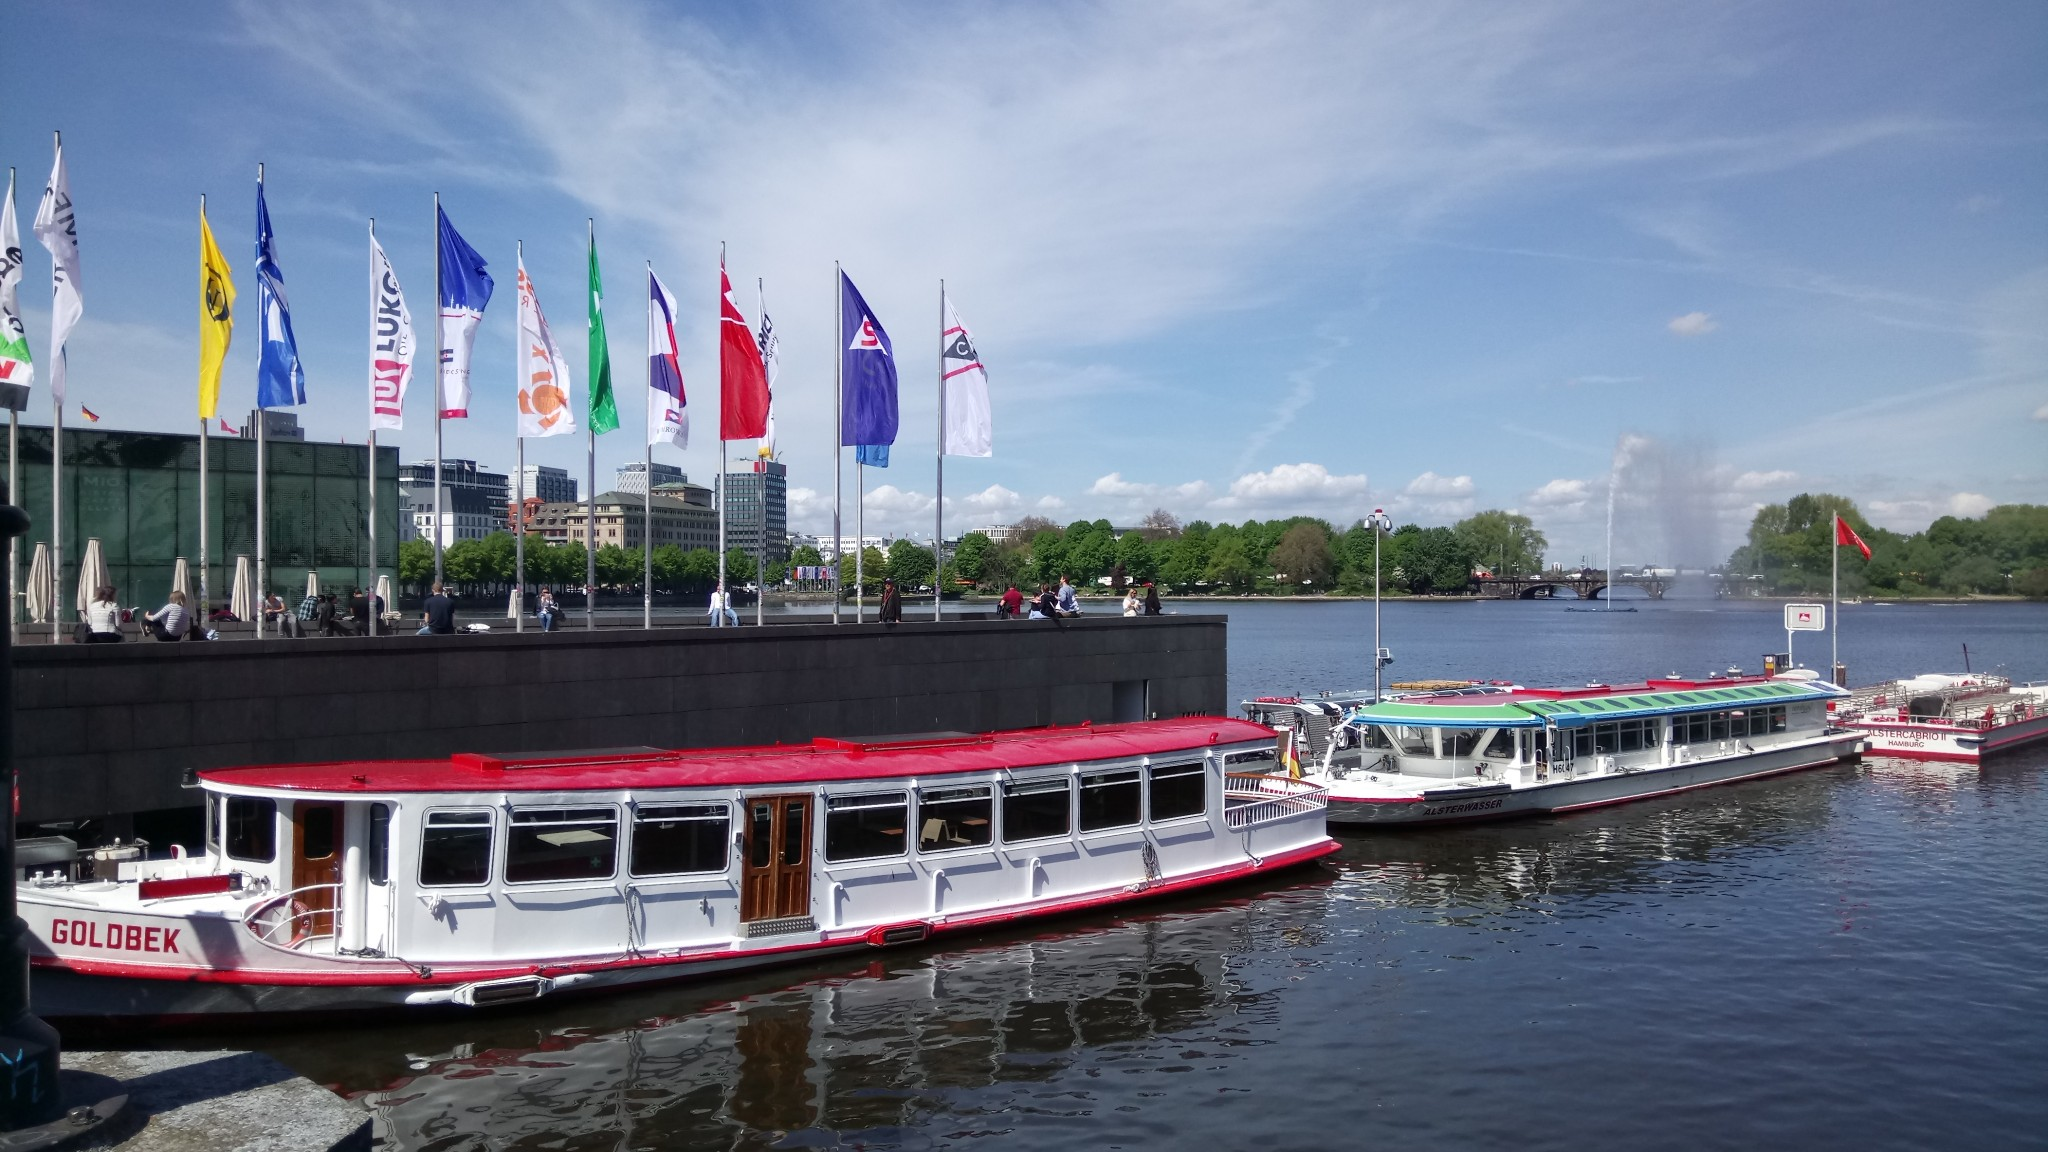 15.05. Hambourg lac Alster